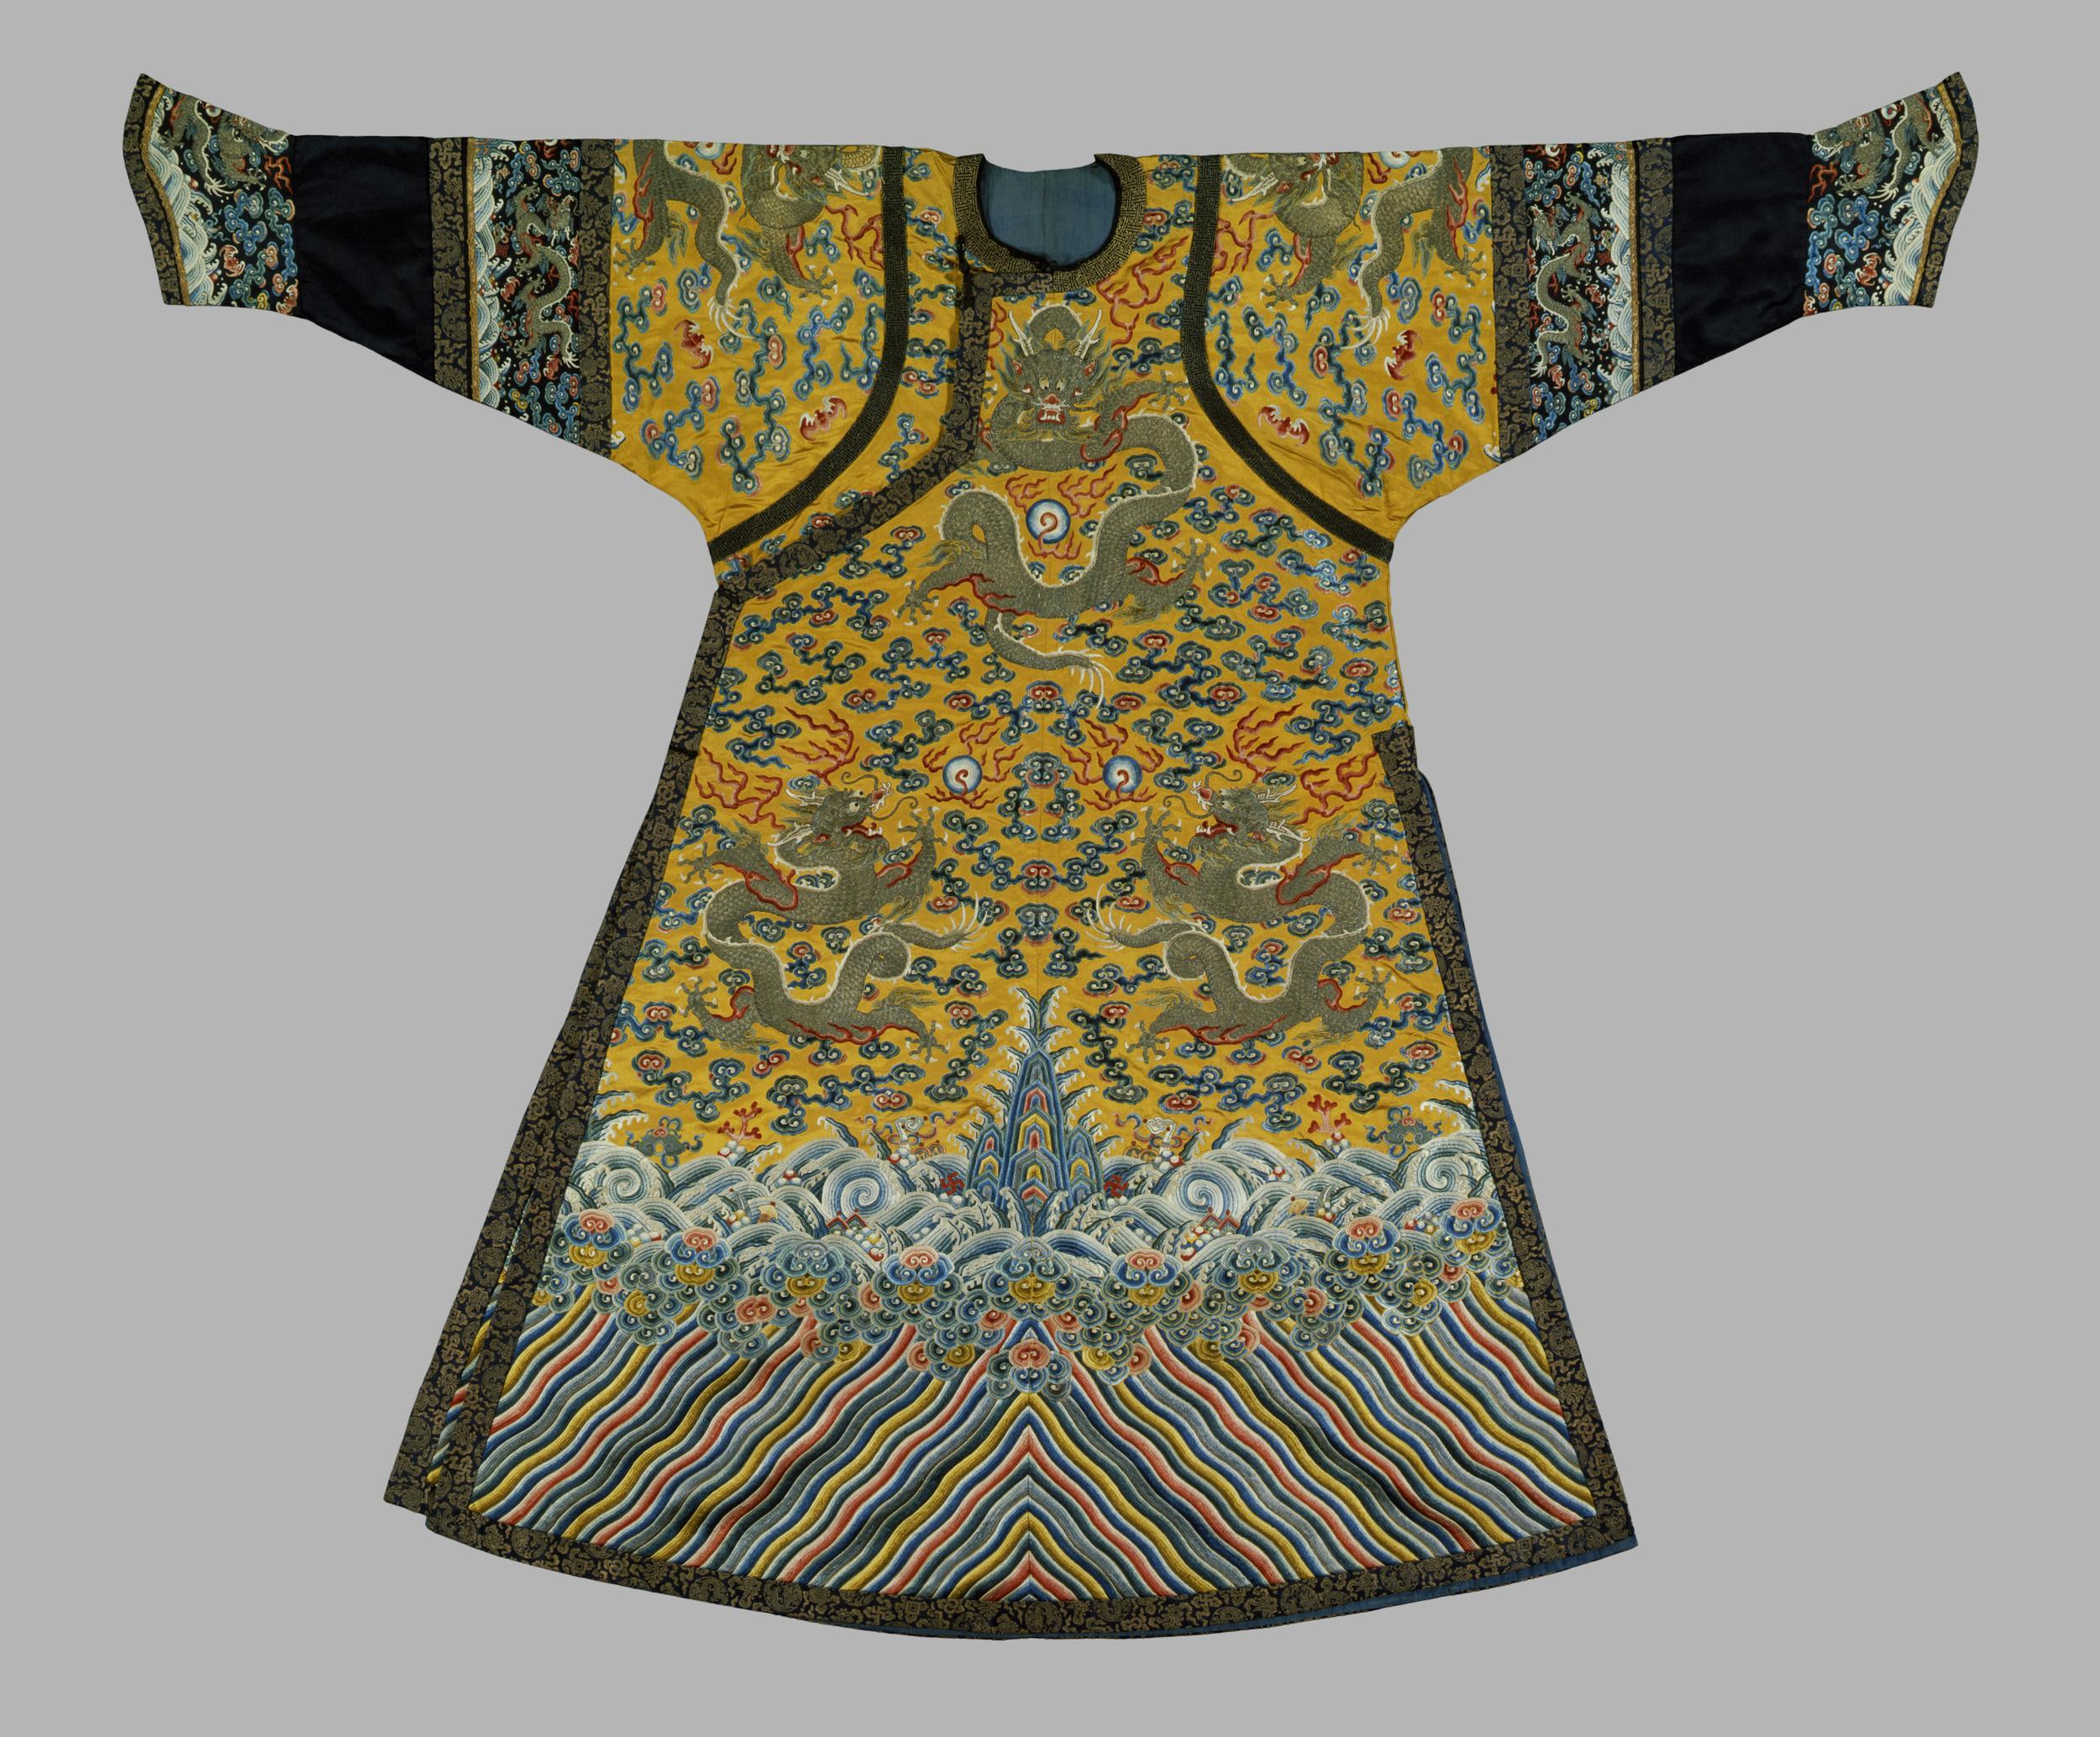 Bright yellow embroidered silk robe with dragons among clouds. Made for an Empress. 1770-1820 (embroidered). © The Victoria & Albert Museum